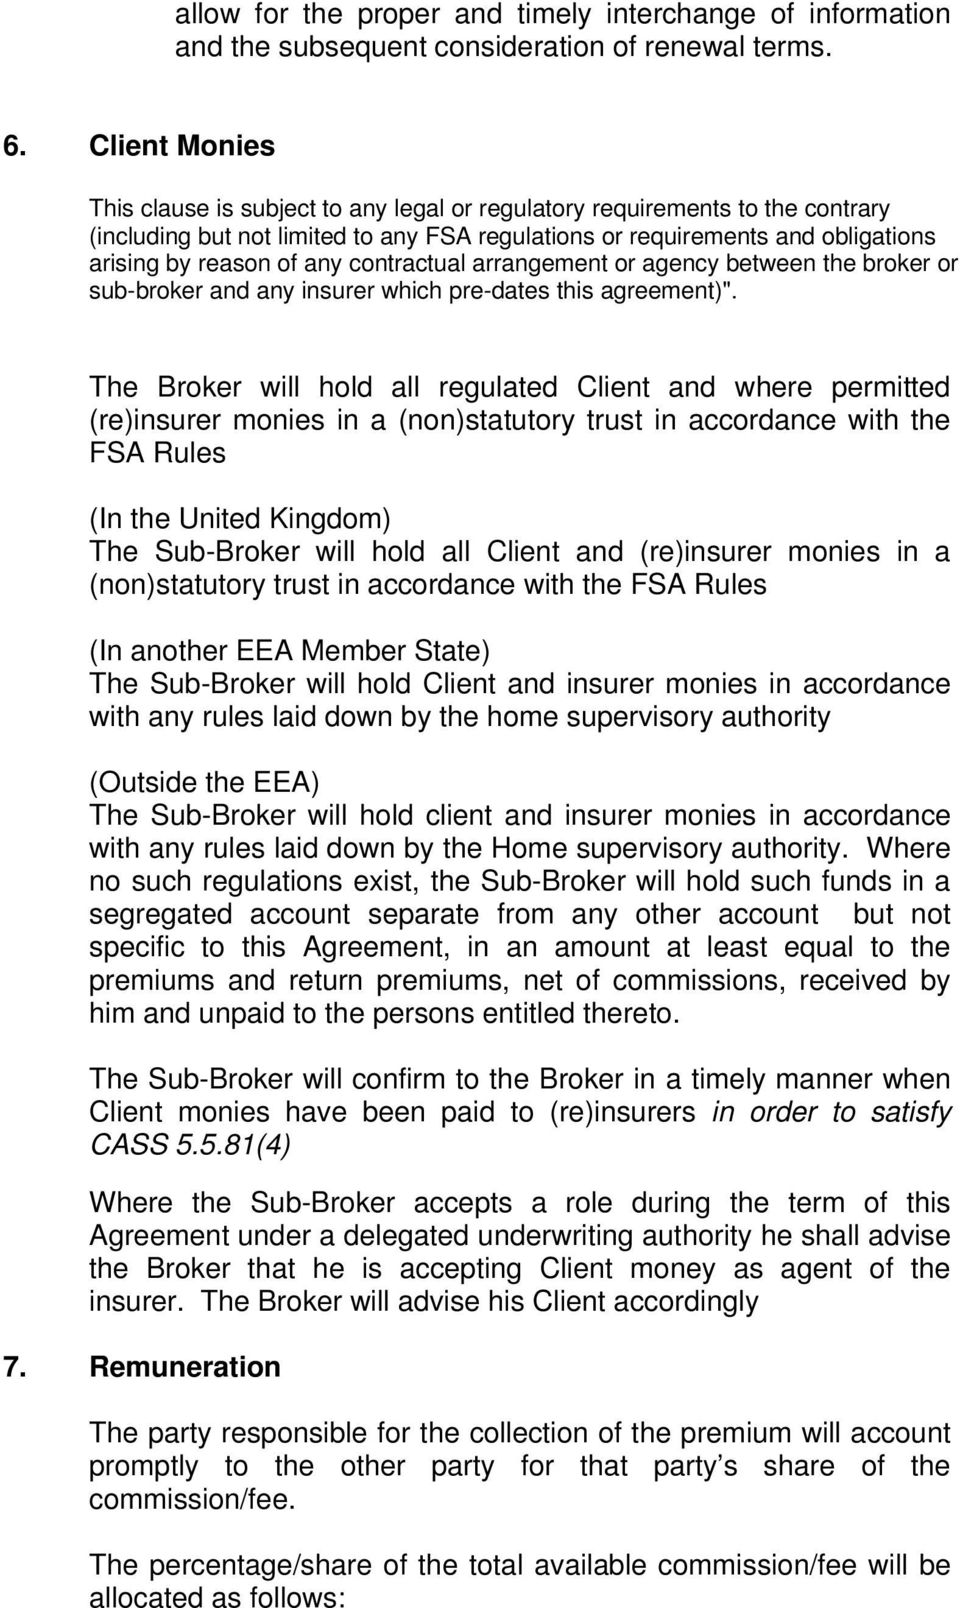 "contractual arrangement or agency between the broker or sub-broker and any insurer which pre-dates this agreement)""."